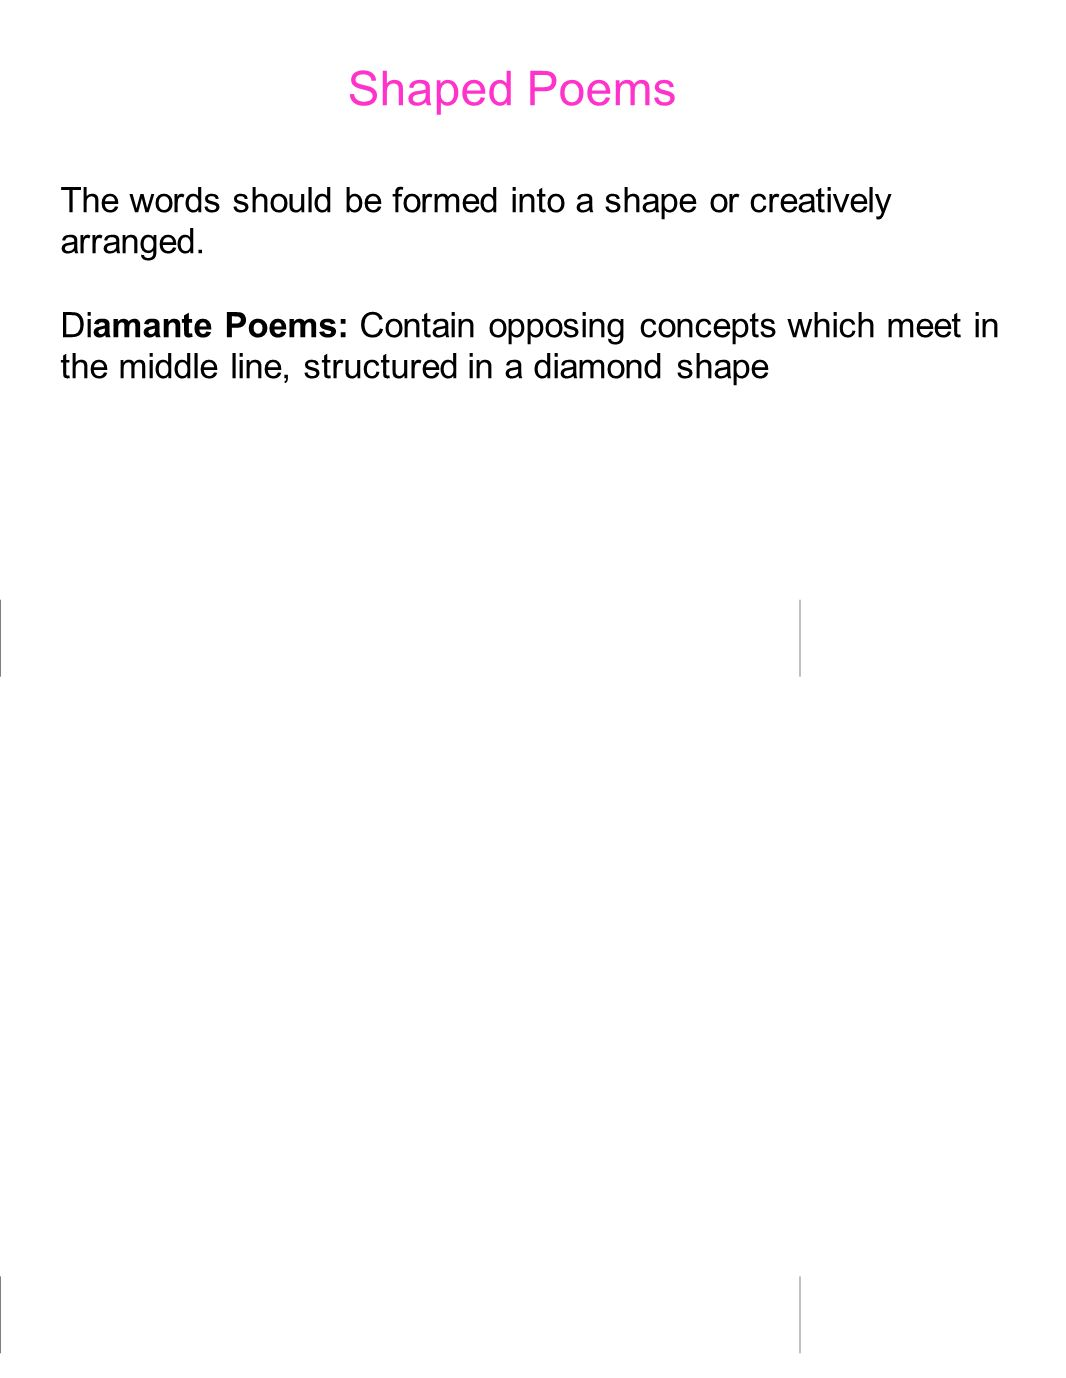 Shaped Poems The words should be formed into a shape or creatively arranged.